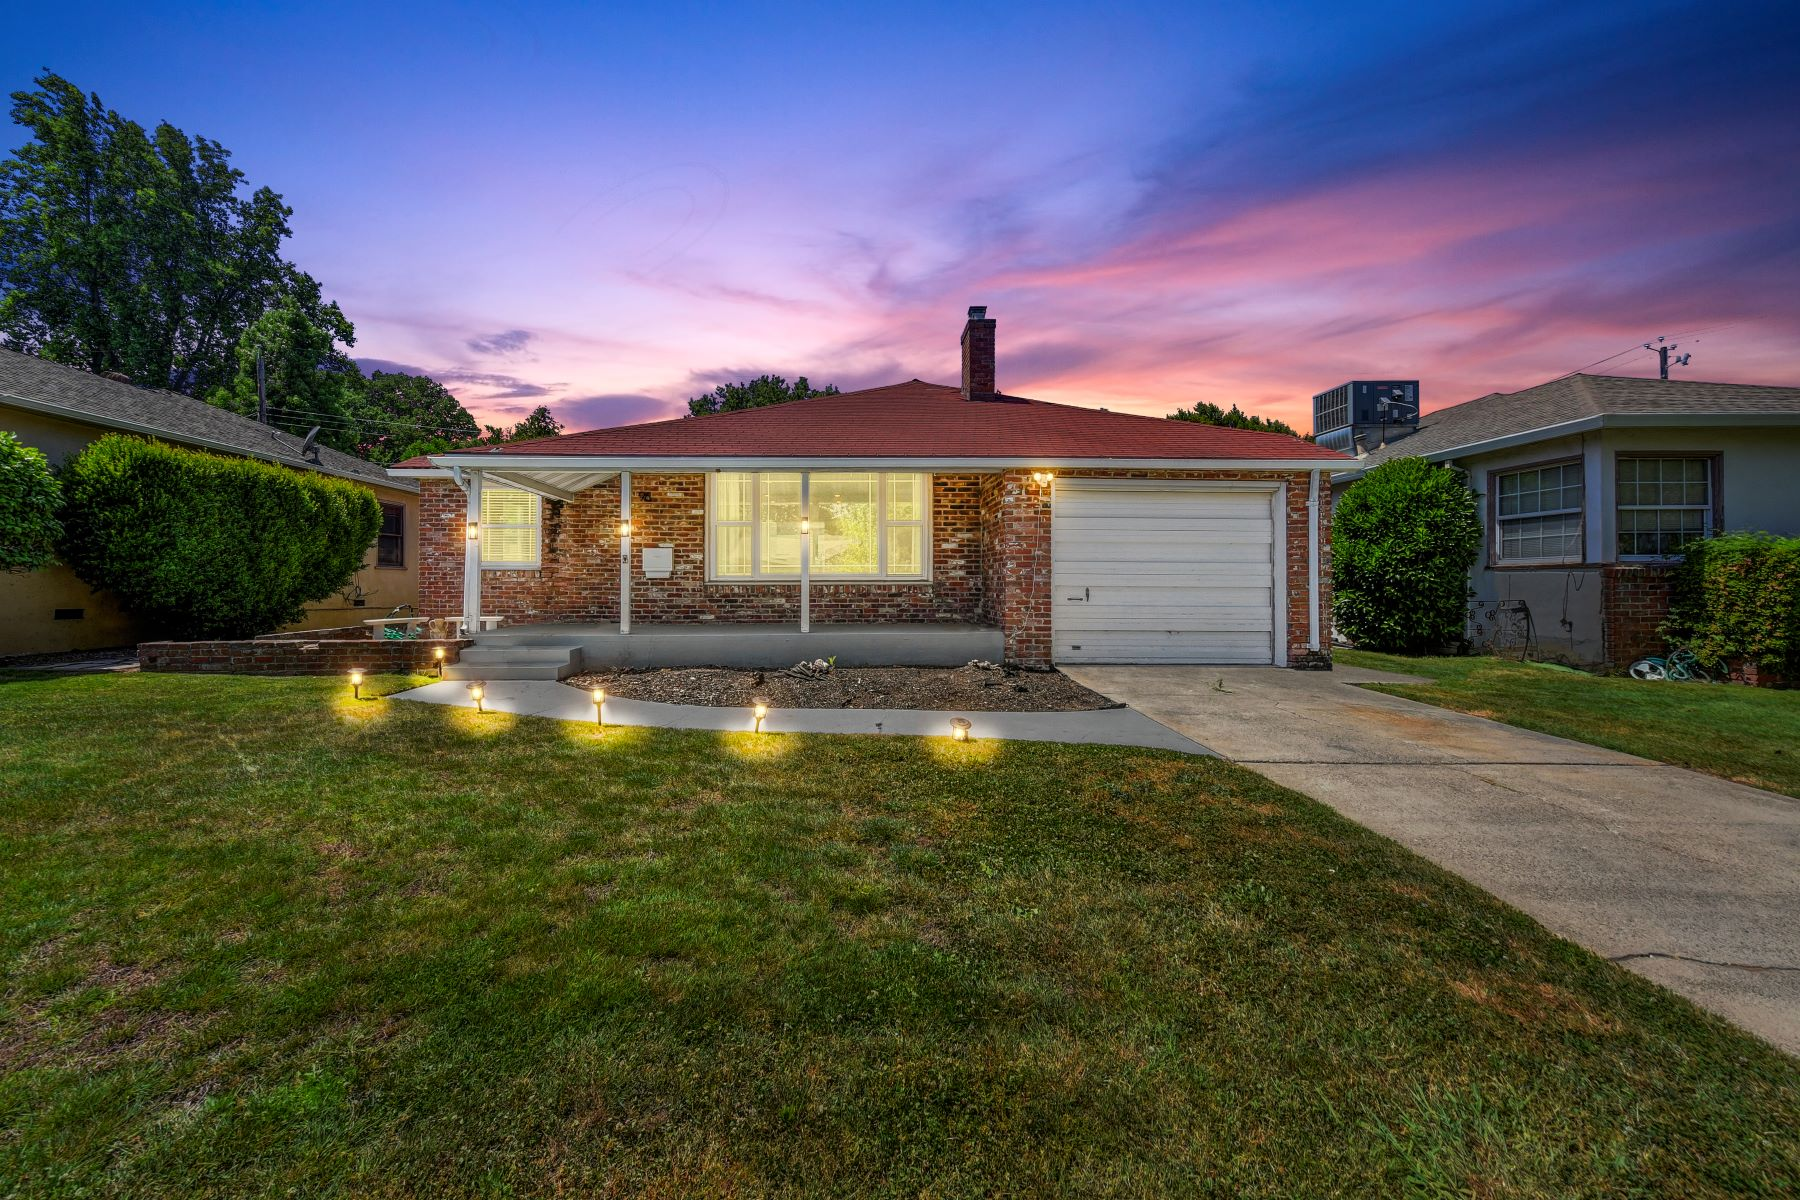 Single Family Homes for Sale at 96 Coloma Way, Sacramento, CA 95819 96 Coloma Way Sacramento, California 95819 United States